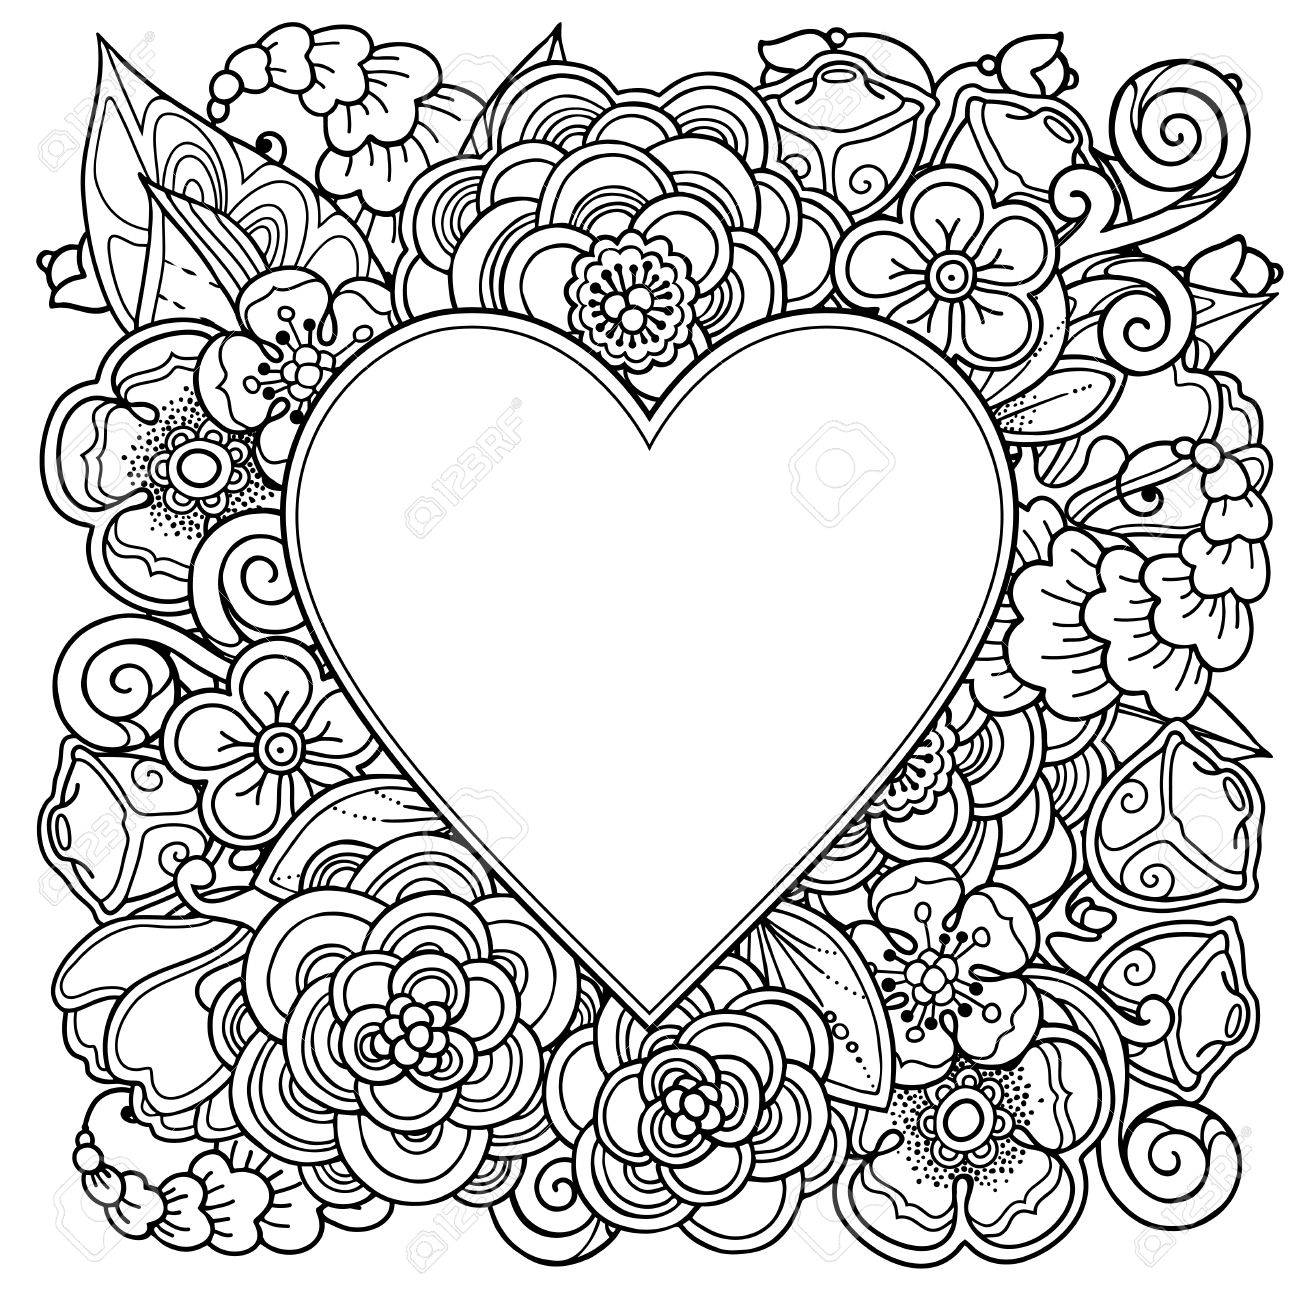 Zentangle Coloring Book Vector Garden Wreath Round Frame In Doodle Style Floral Ornate Decorative Design